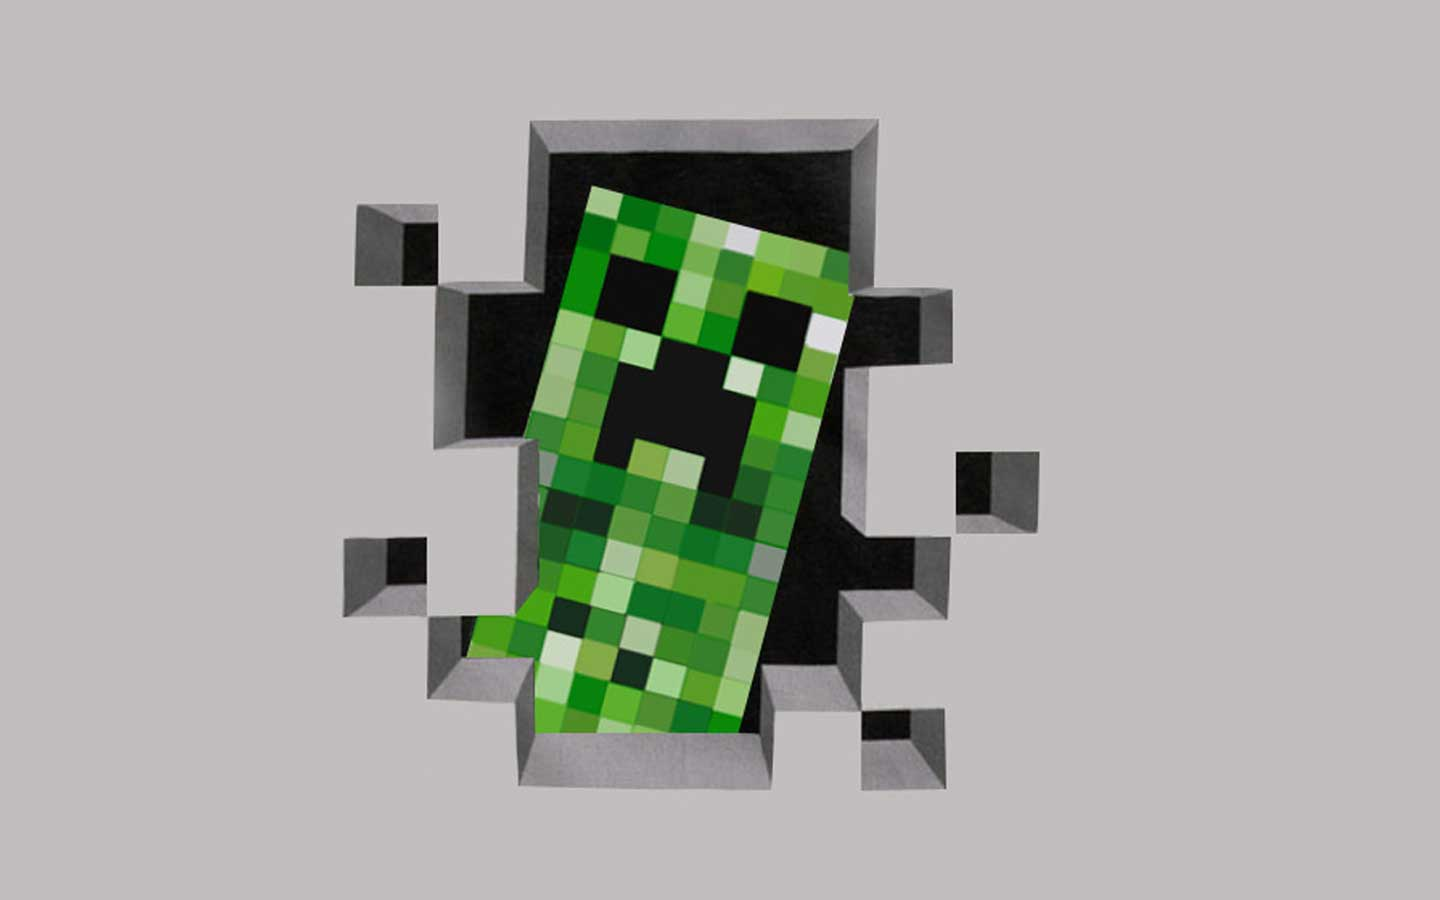 Wallpapers For Minecraft - Wallpaper Cave